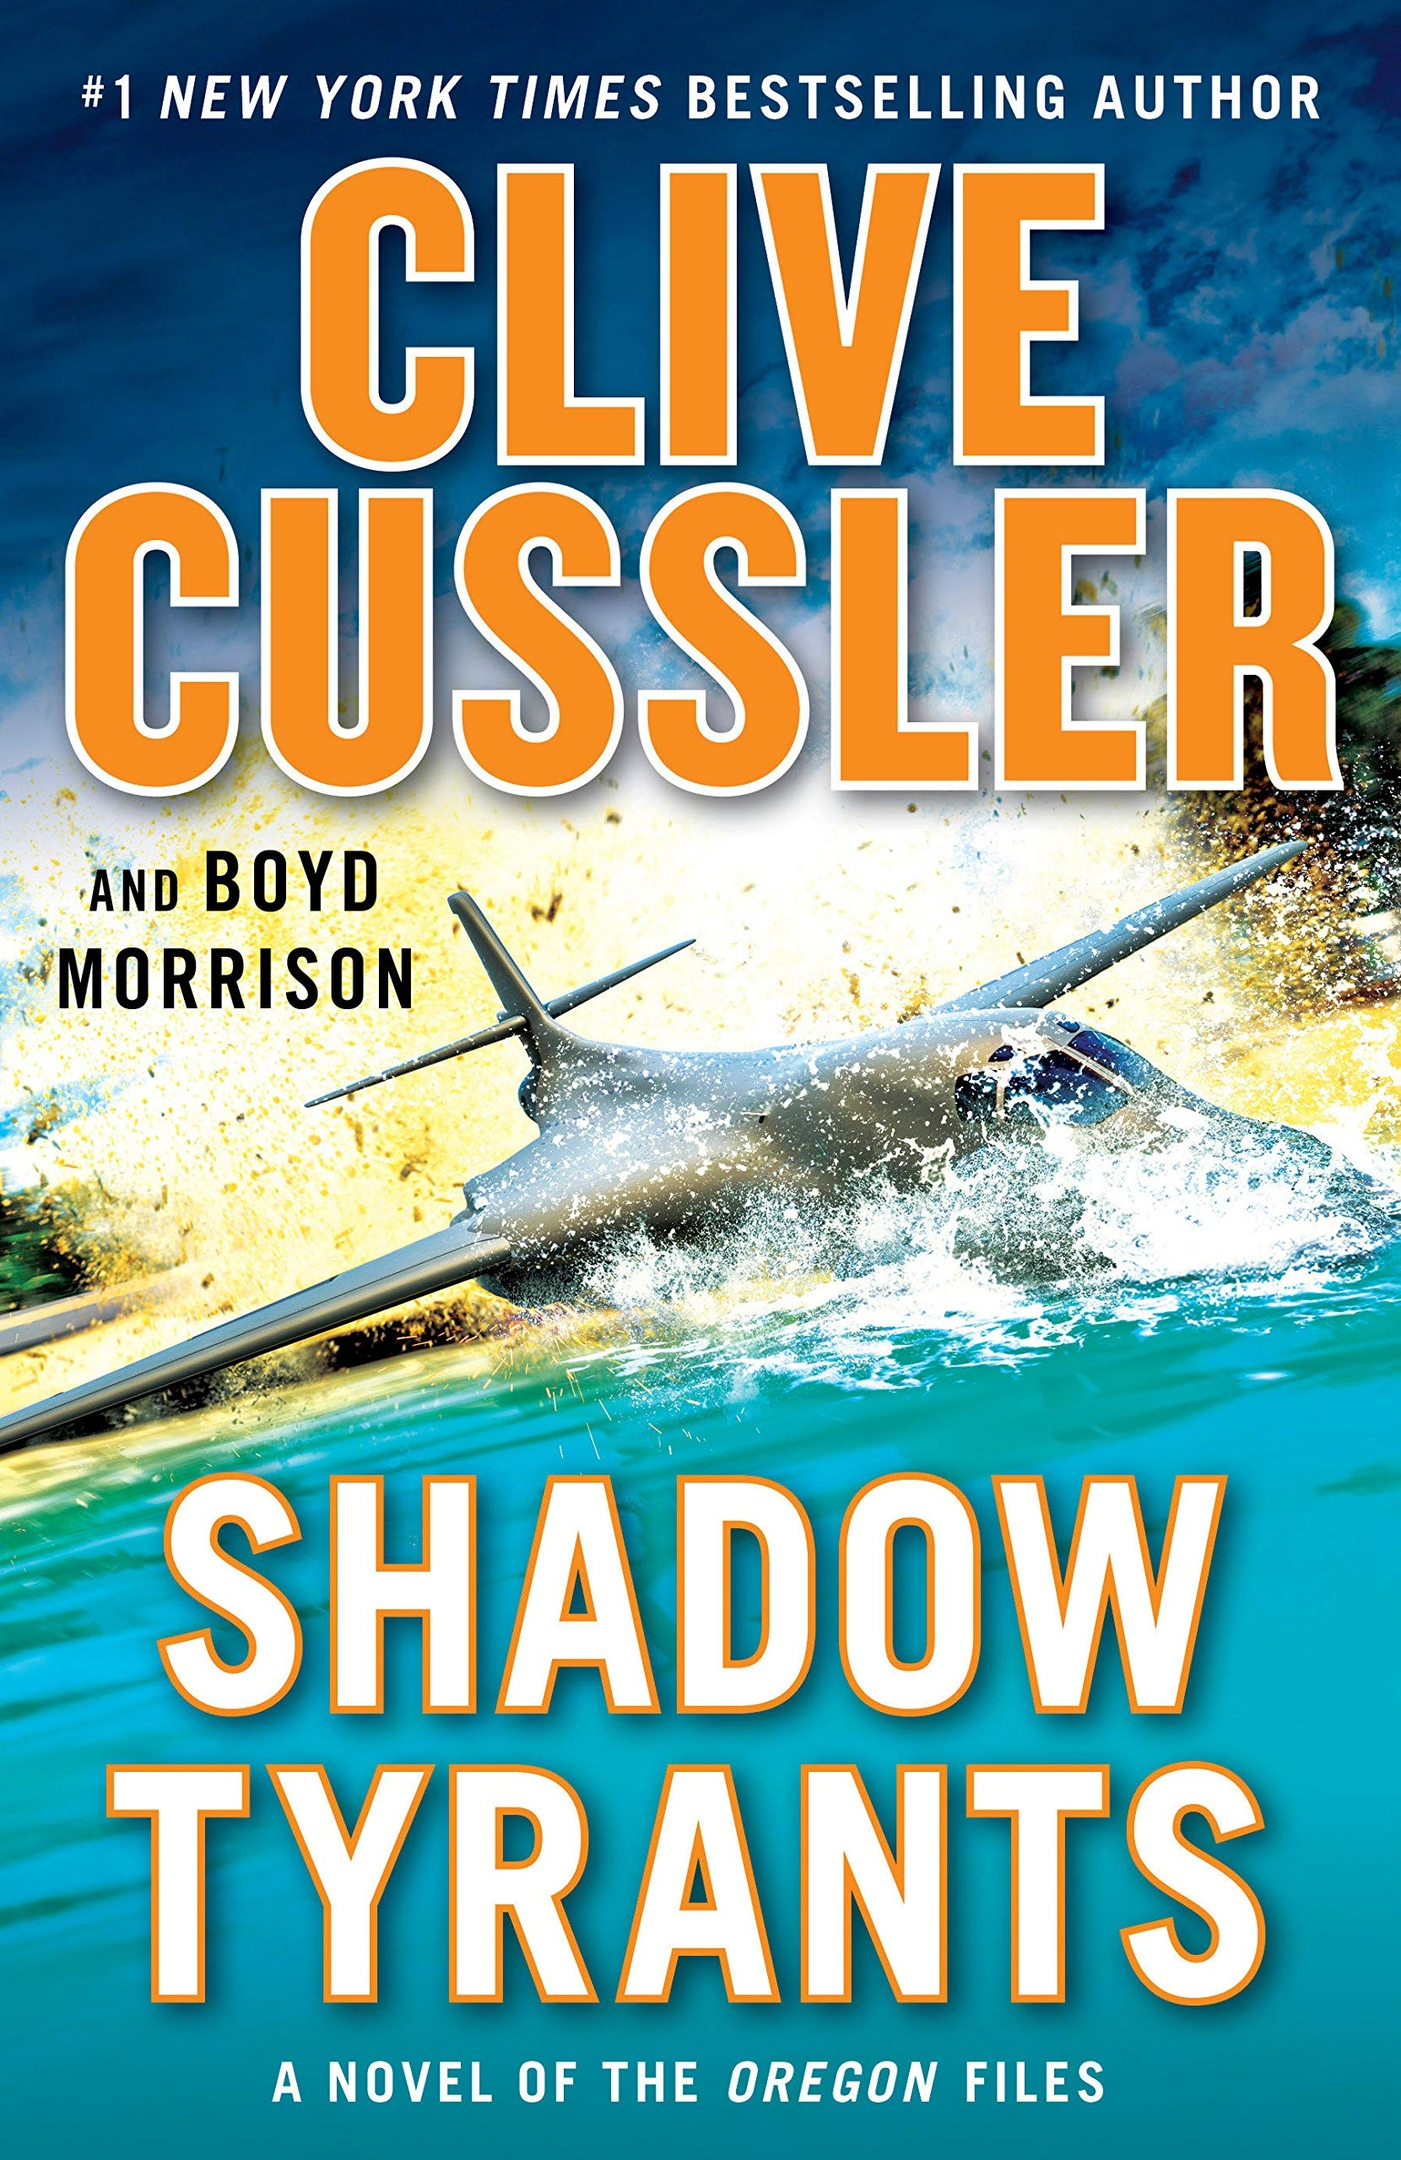 Clive Cussler – Shadow Tyrants